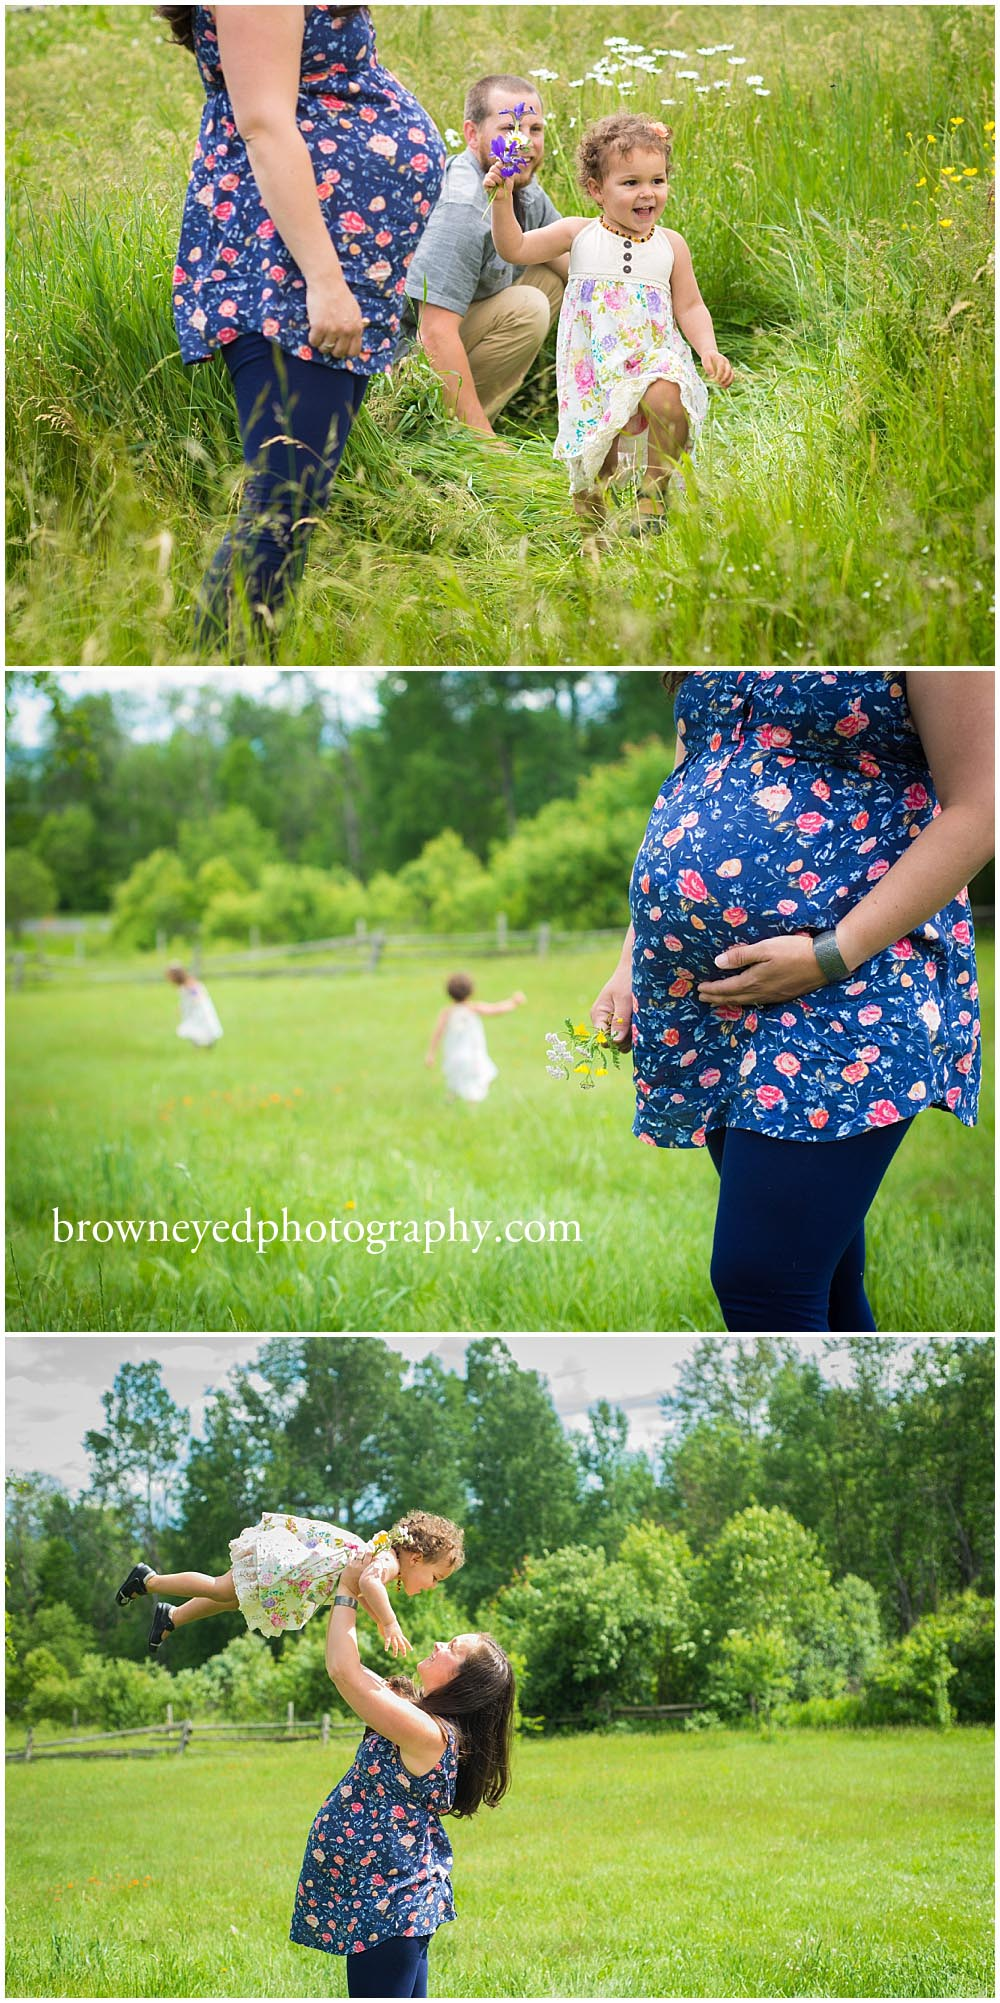 children with pregnant woman wearing floral shirt